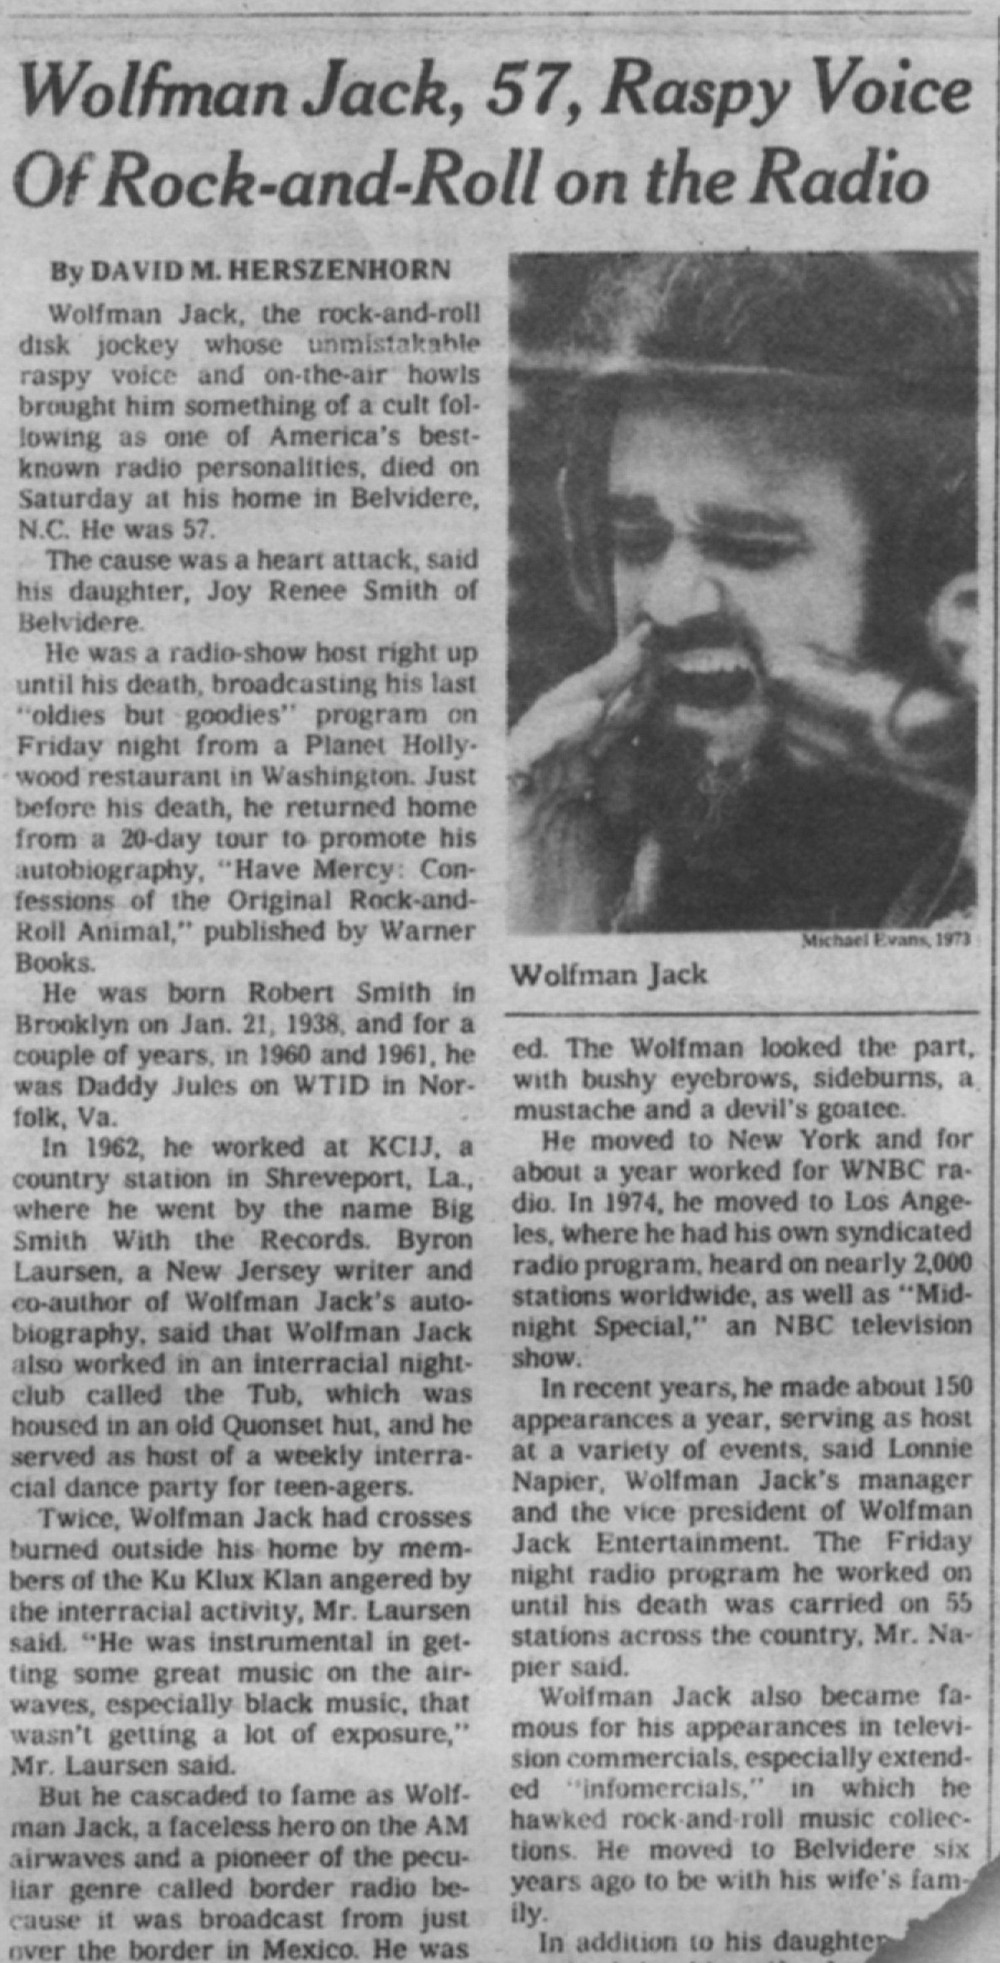 Wolfman Jack obit in the New York Times, July 3, 1995